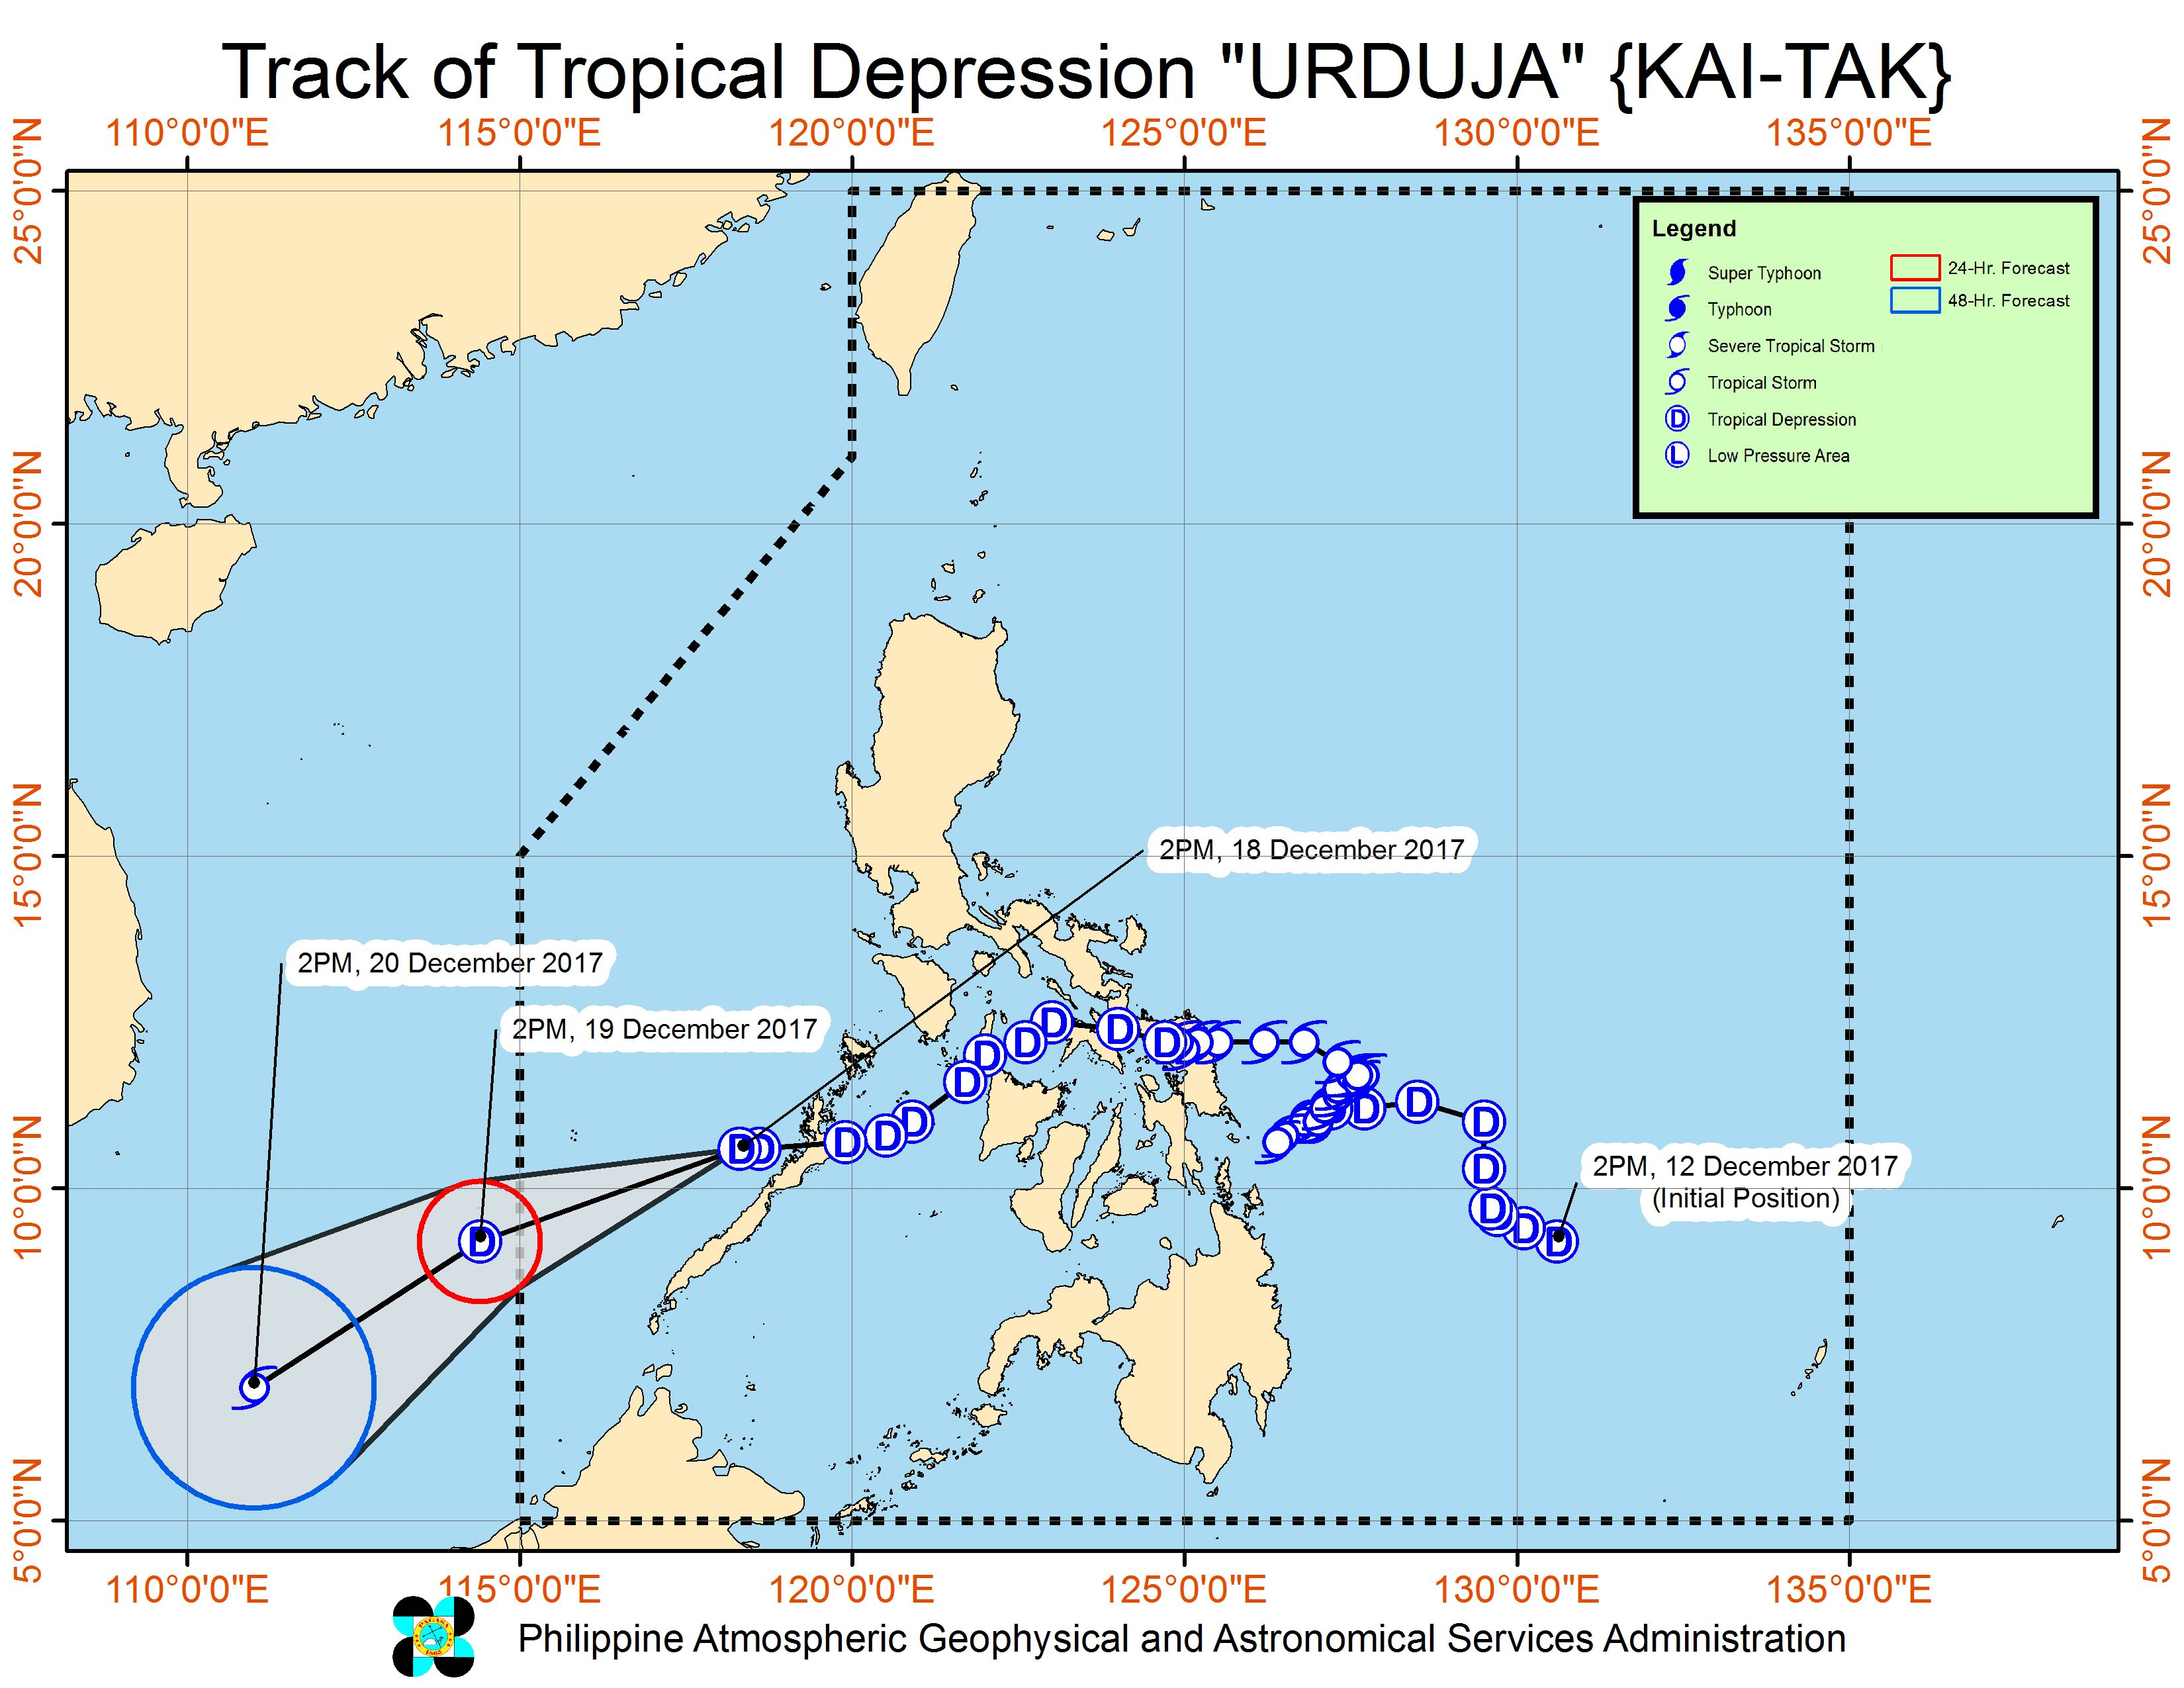 Tropical Depression Urduja now over West PH Sea